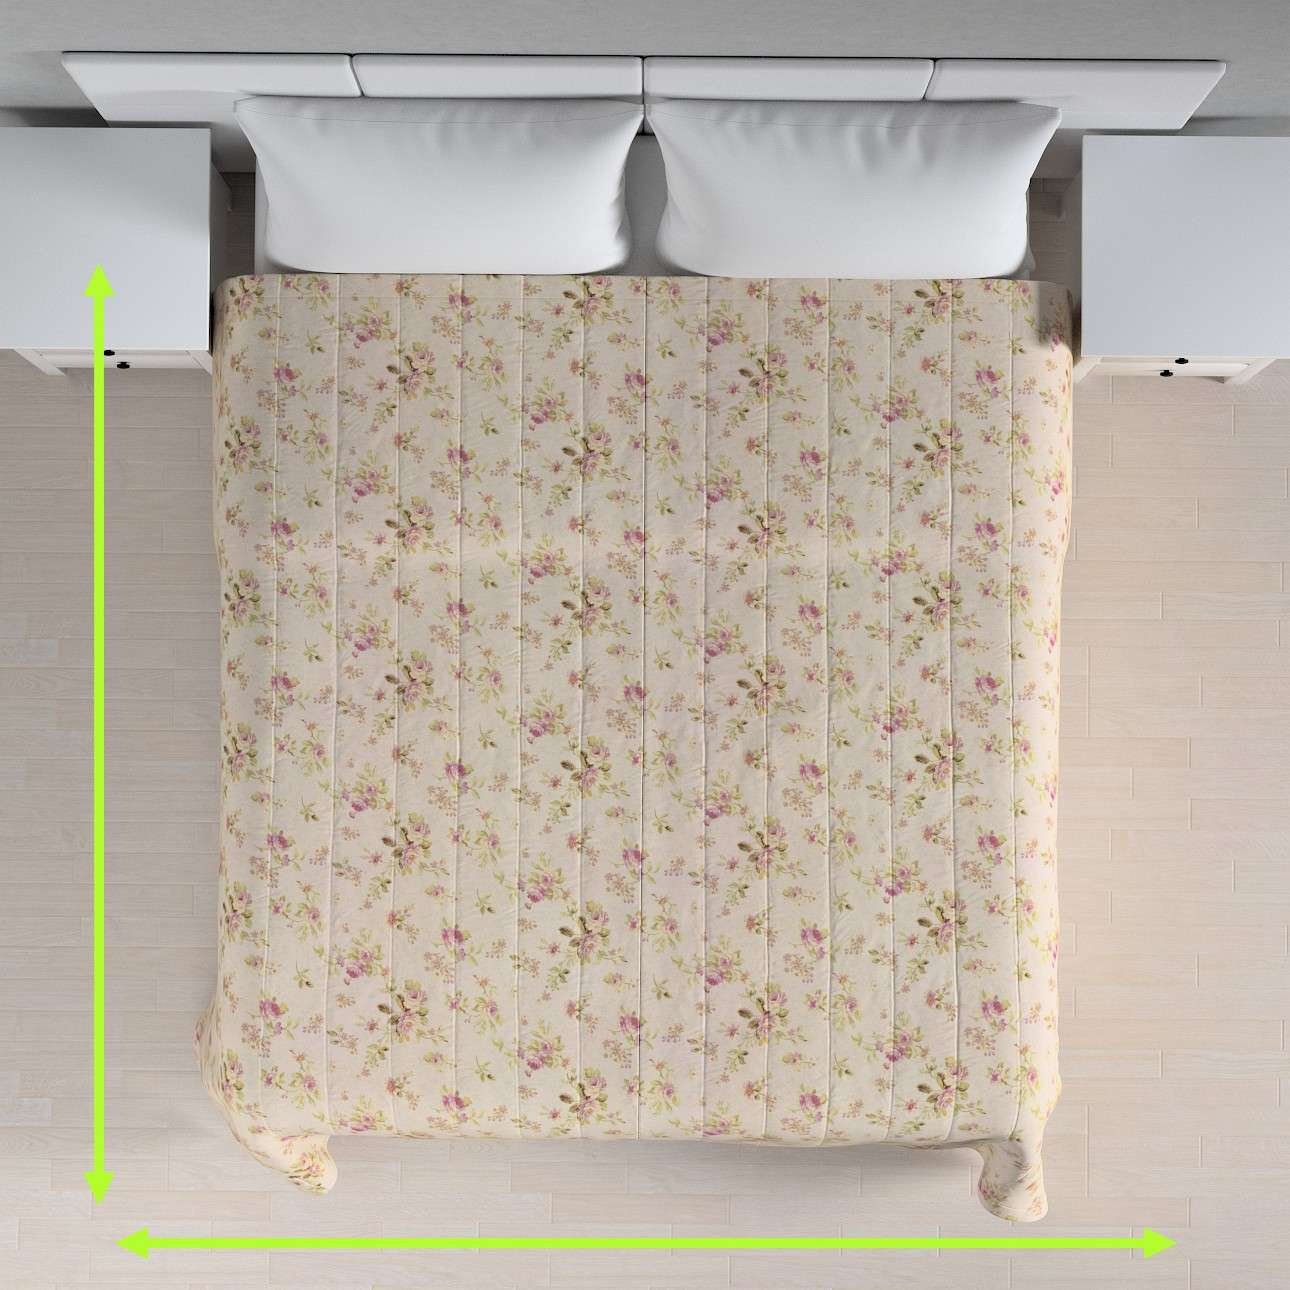 Quilted throw (vertical quilt pattern) in collection Londres, fabric: 122-07